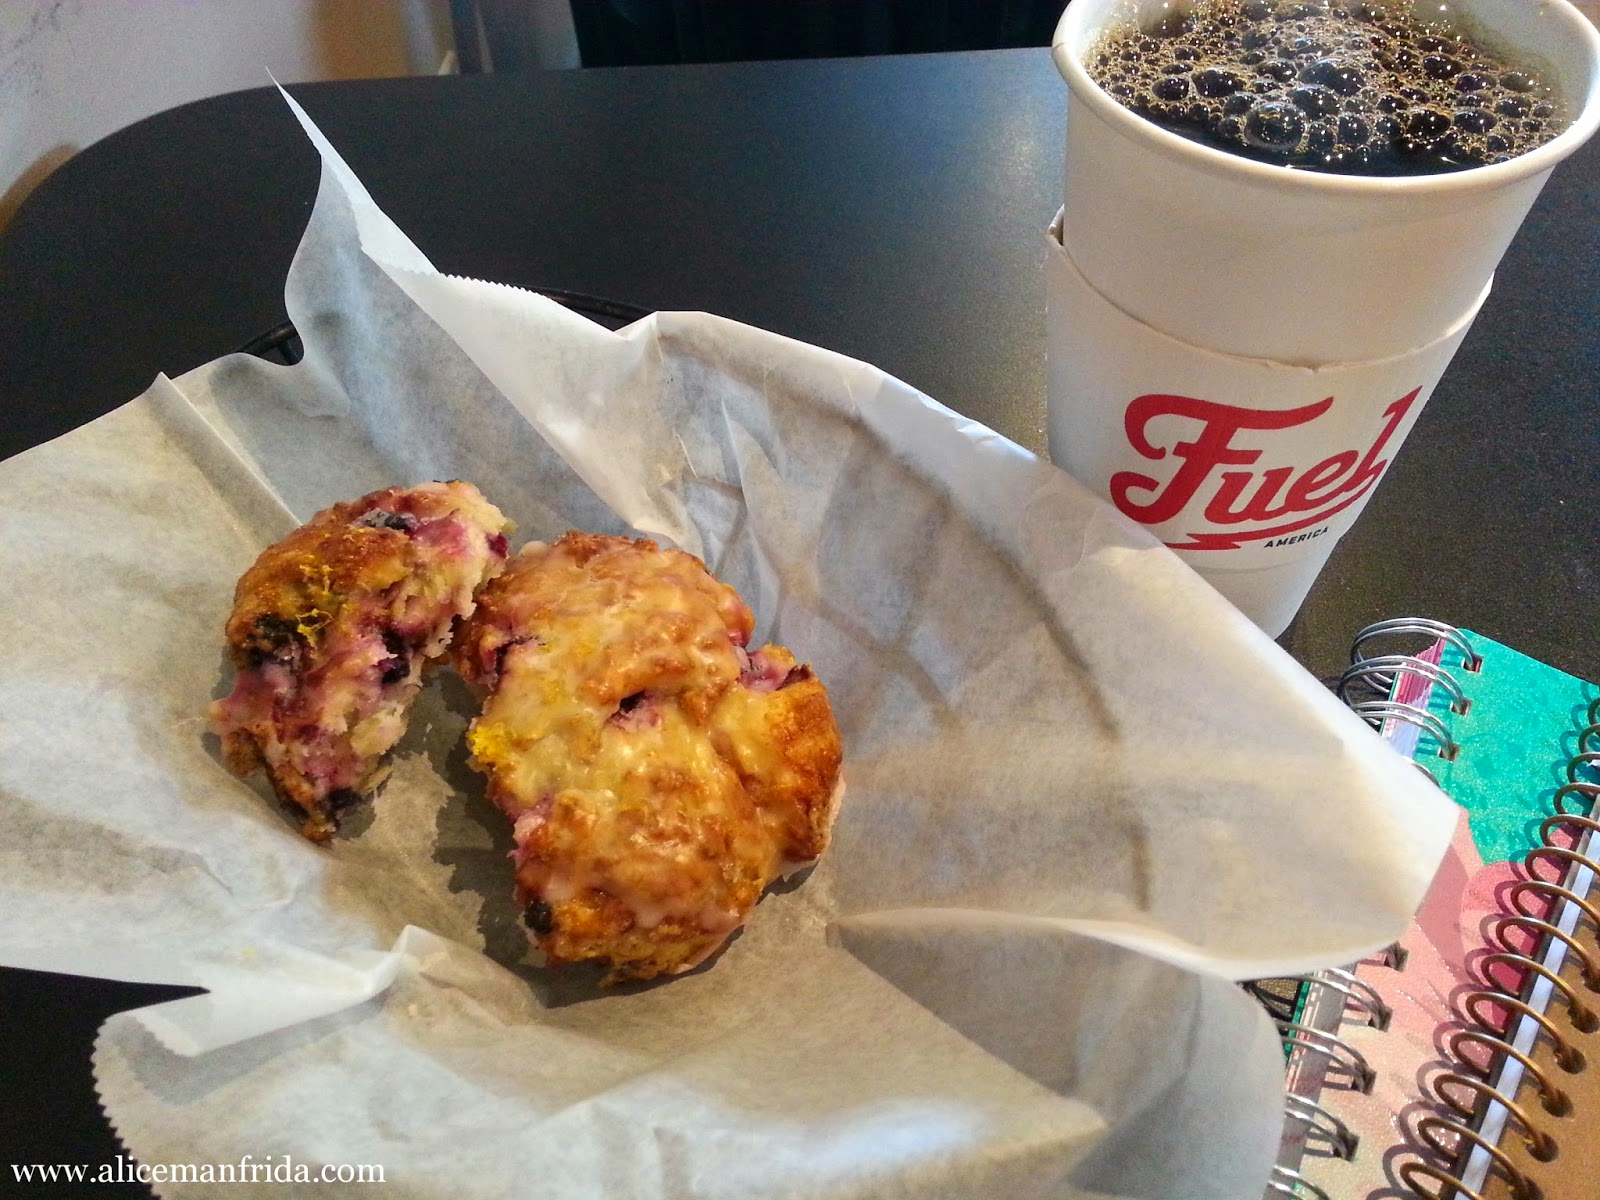 scone, fuel, coffee shop, blueberry scone, breakfast